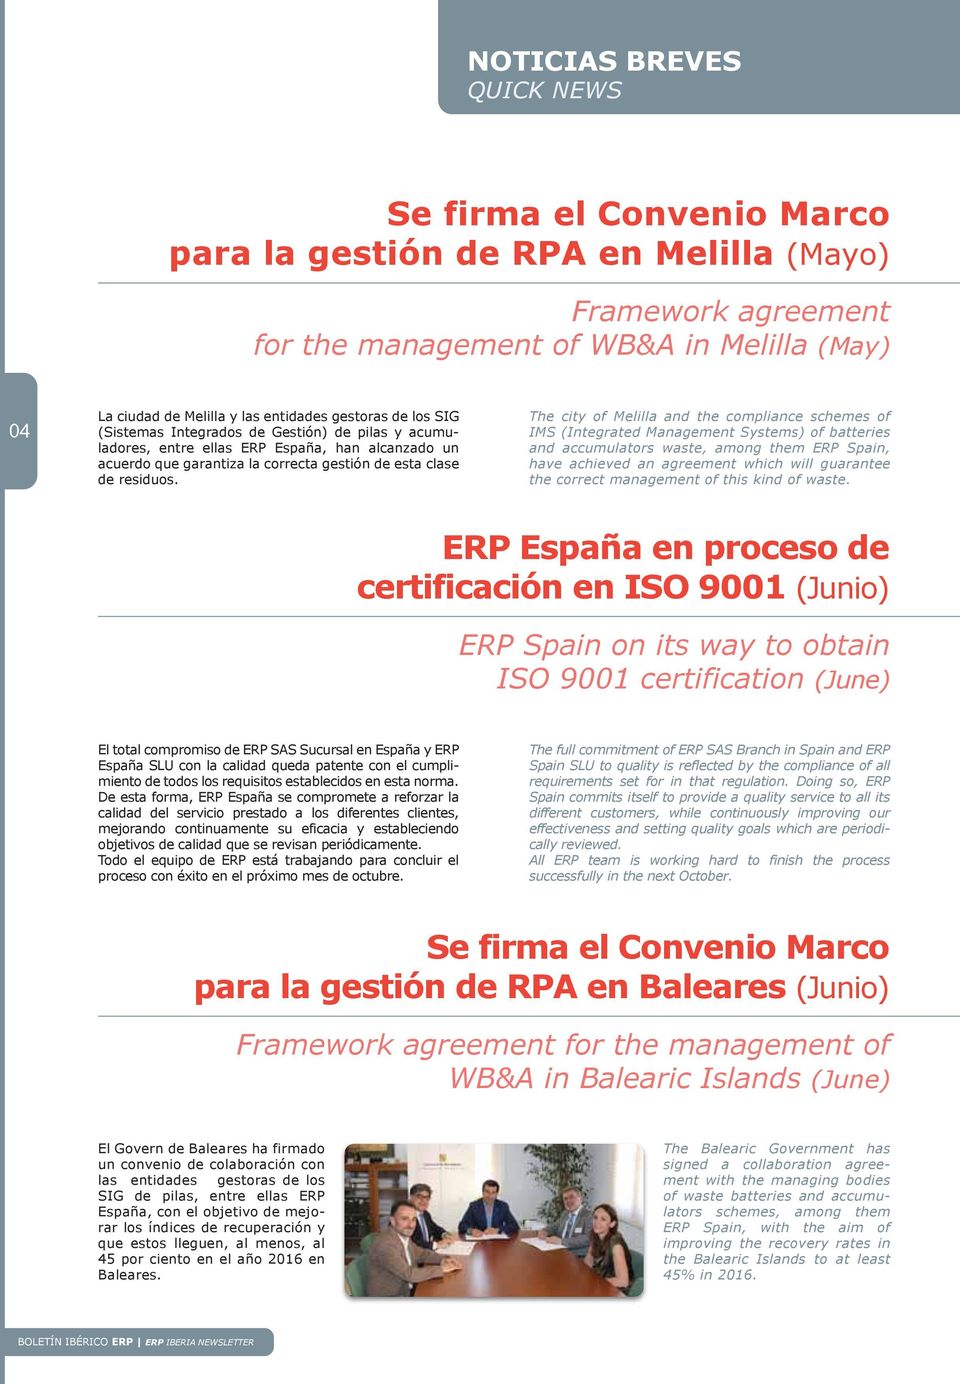 The city of Melilla and the compliance schemes of IMS (Integrated Management Systems) of batteries and accumulators waste, among them ERP Spain, have achieved an agreement which will guarantee the